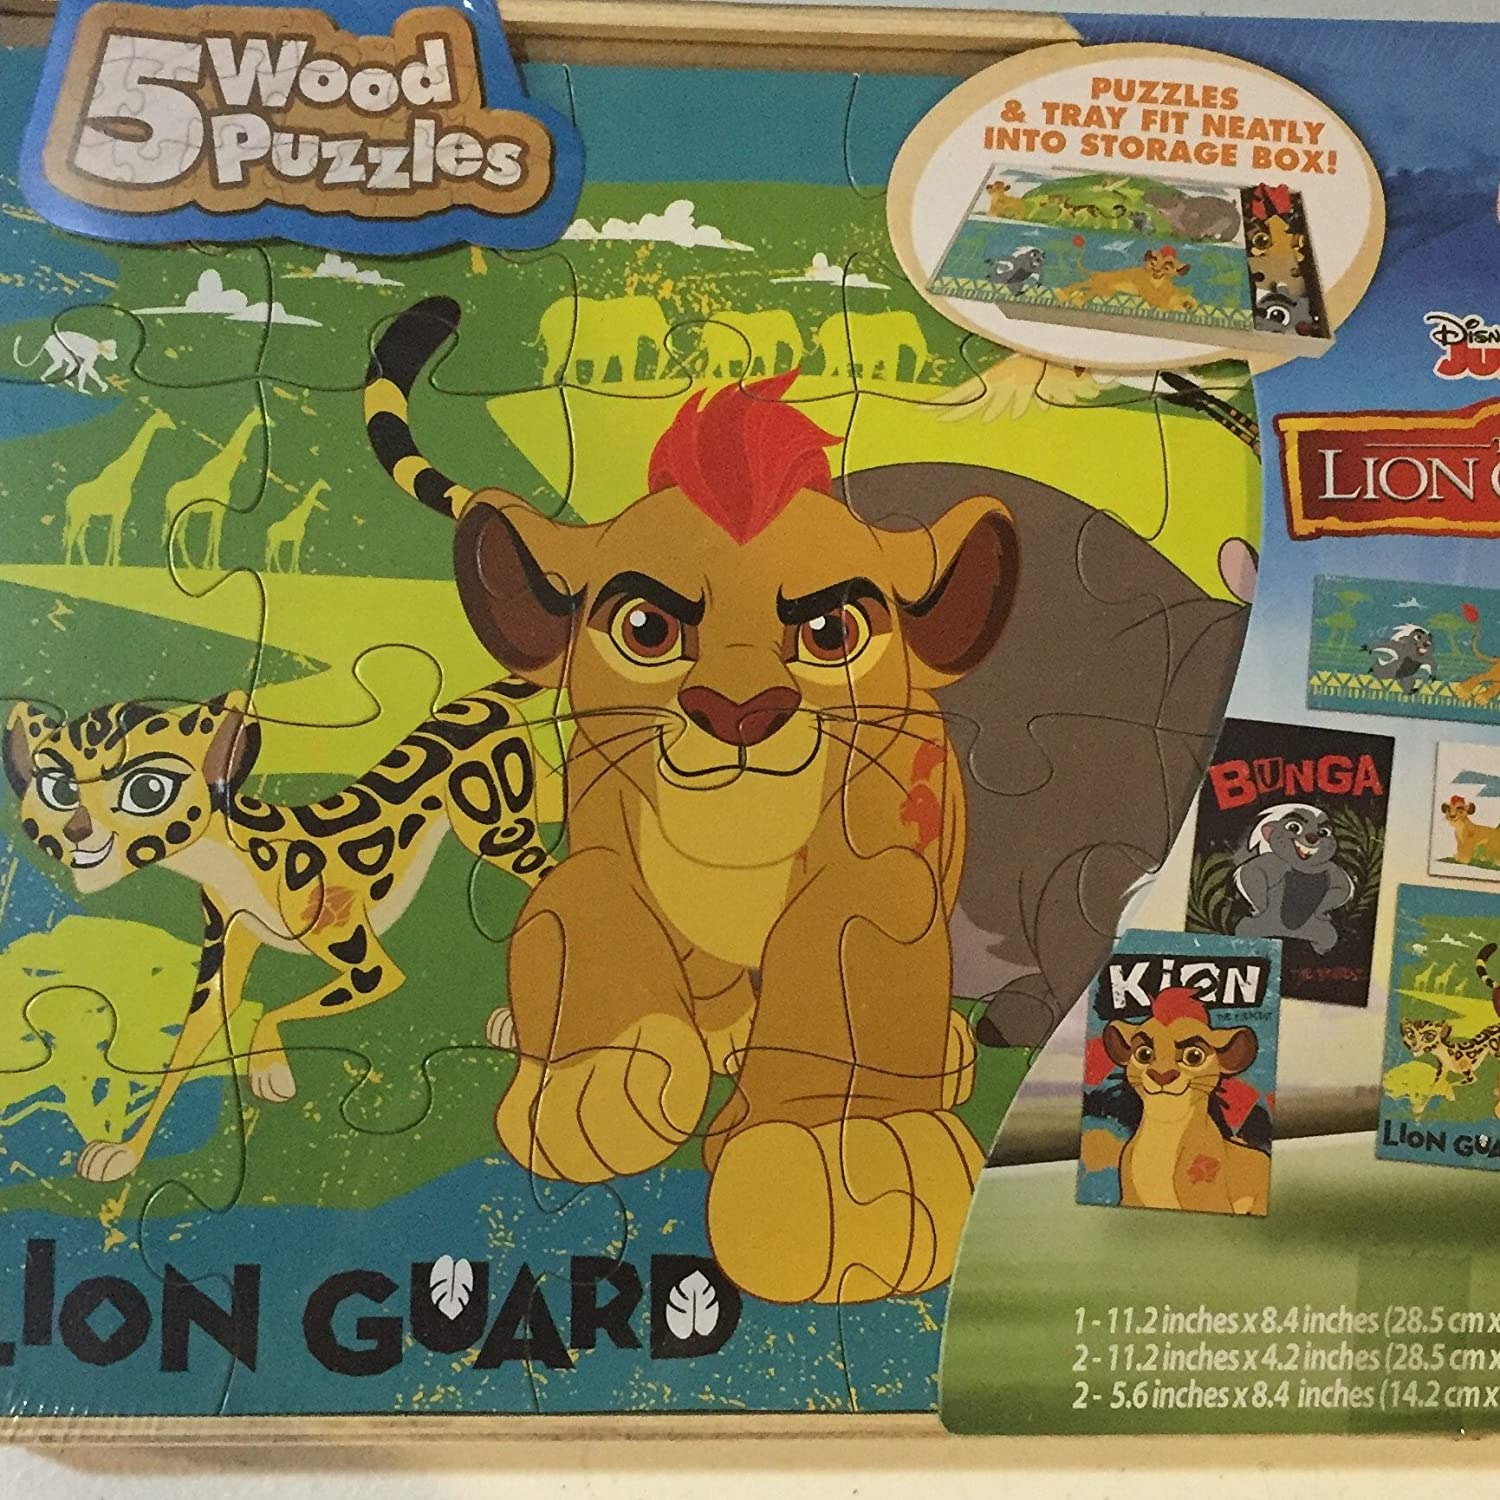 Amazon Disney Junior The Lion Guard 5 Wood Puzzles Toys Games